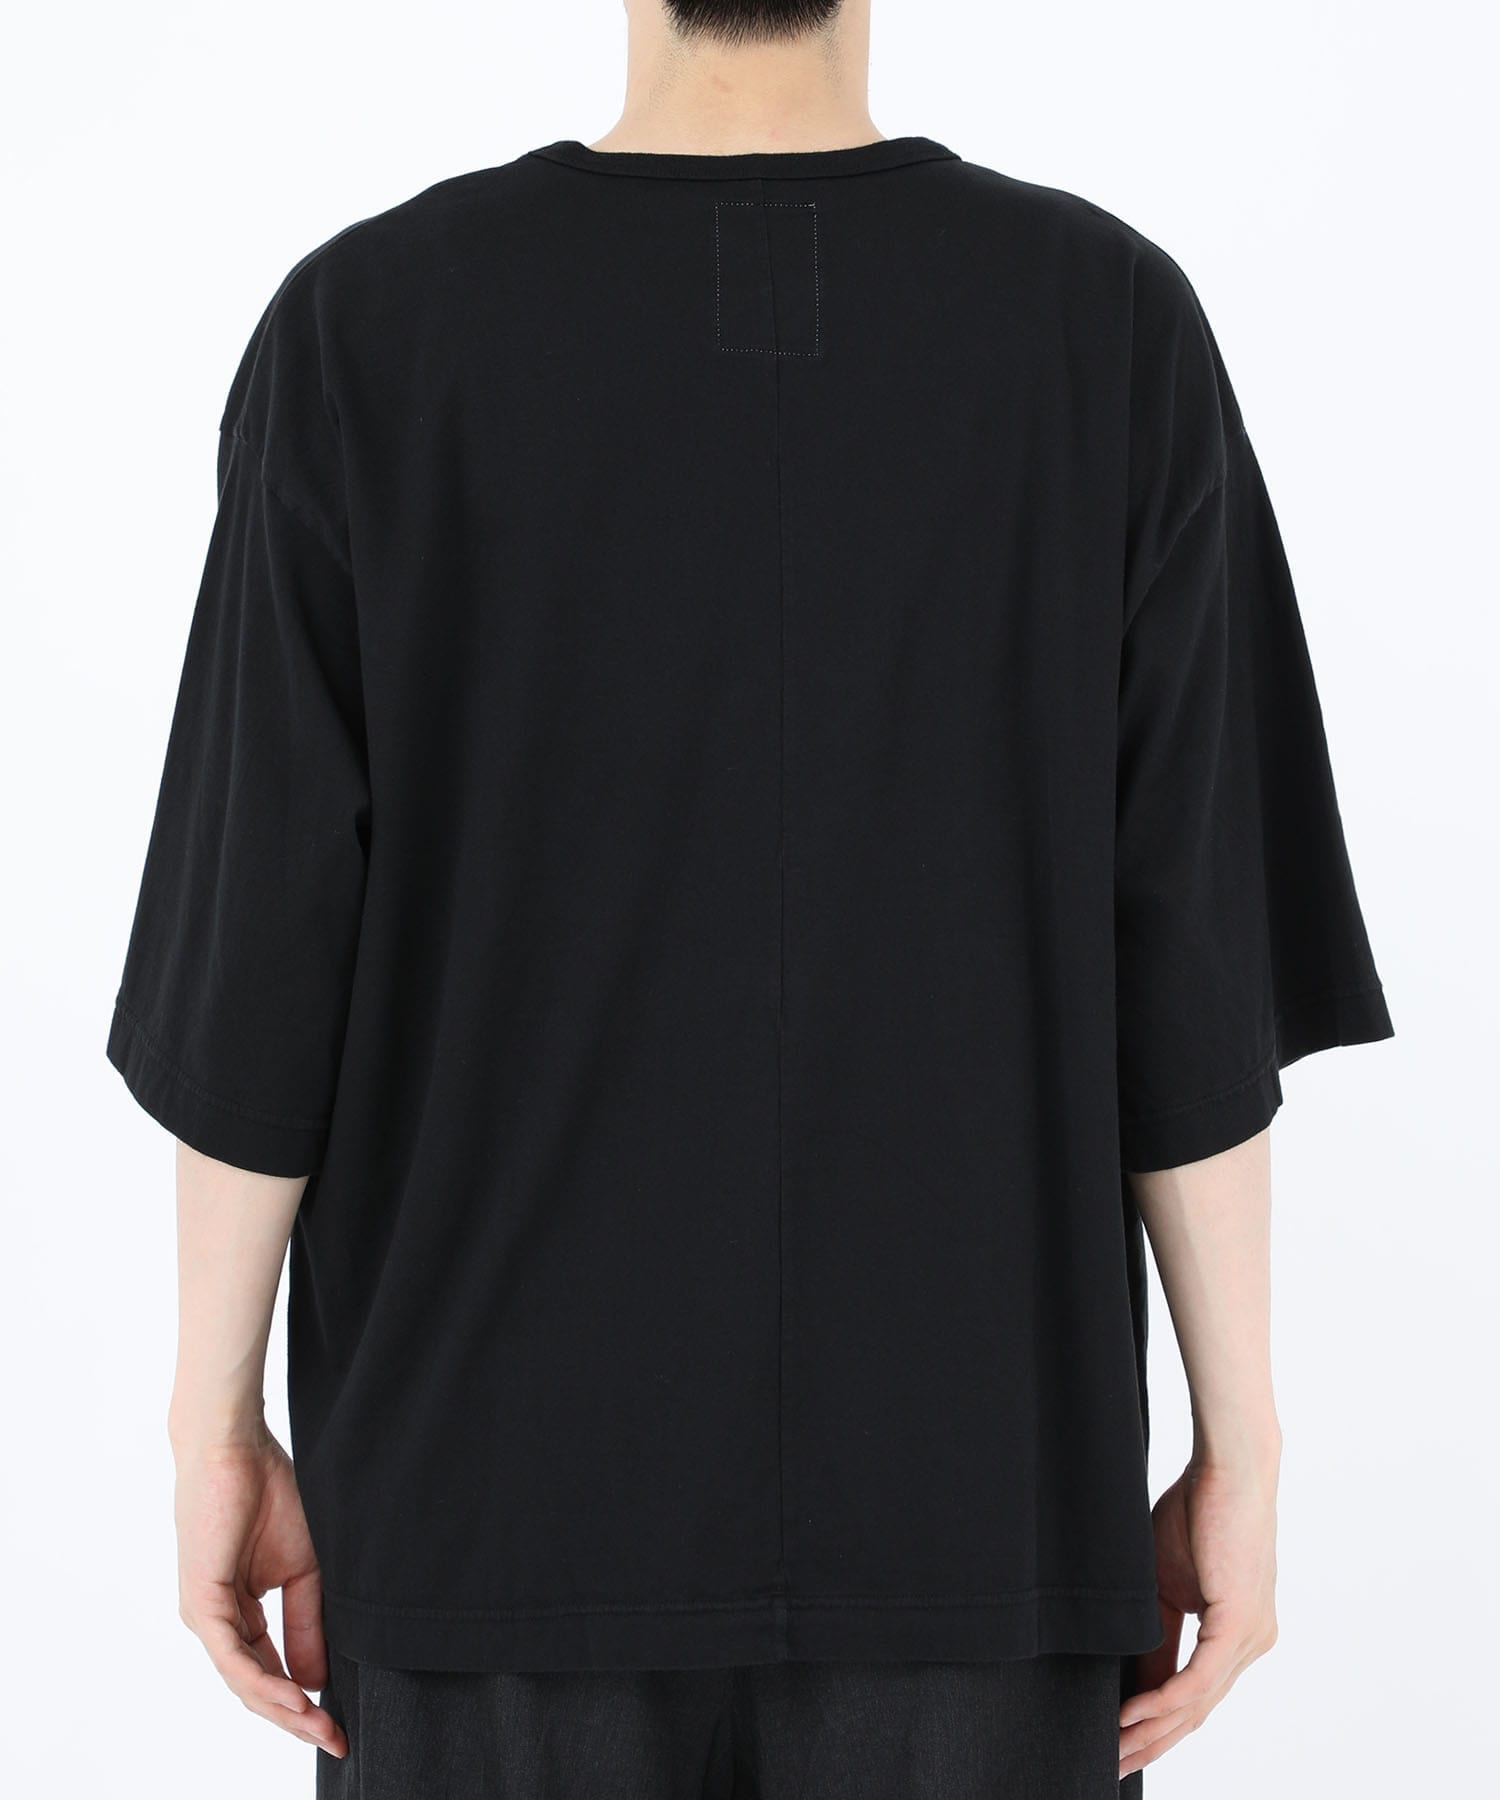 復刻APPLE BIG TEE TYPE2